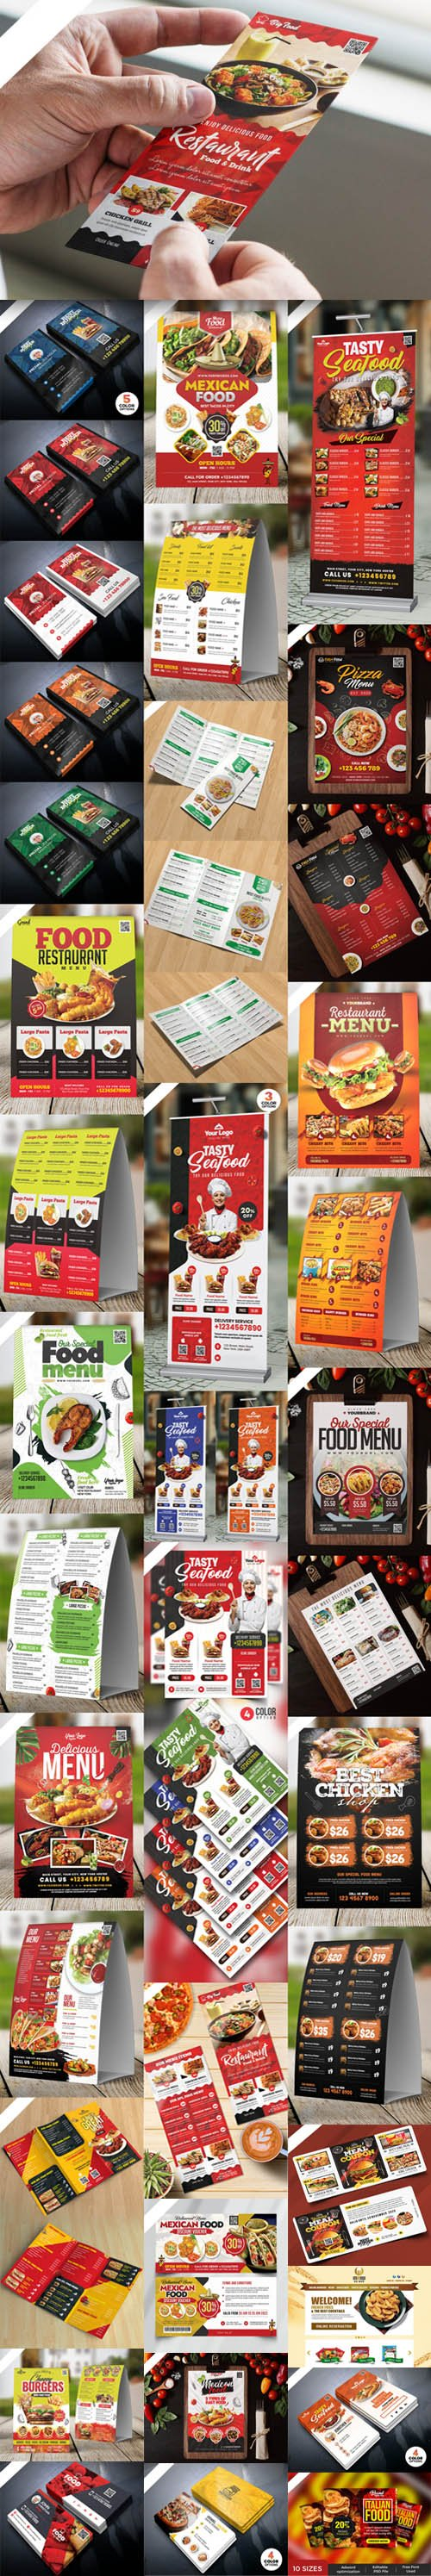 Huge Restaurant Food PSD Templates Collection